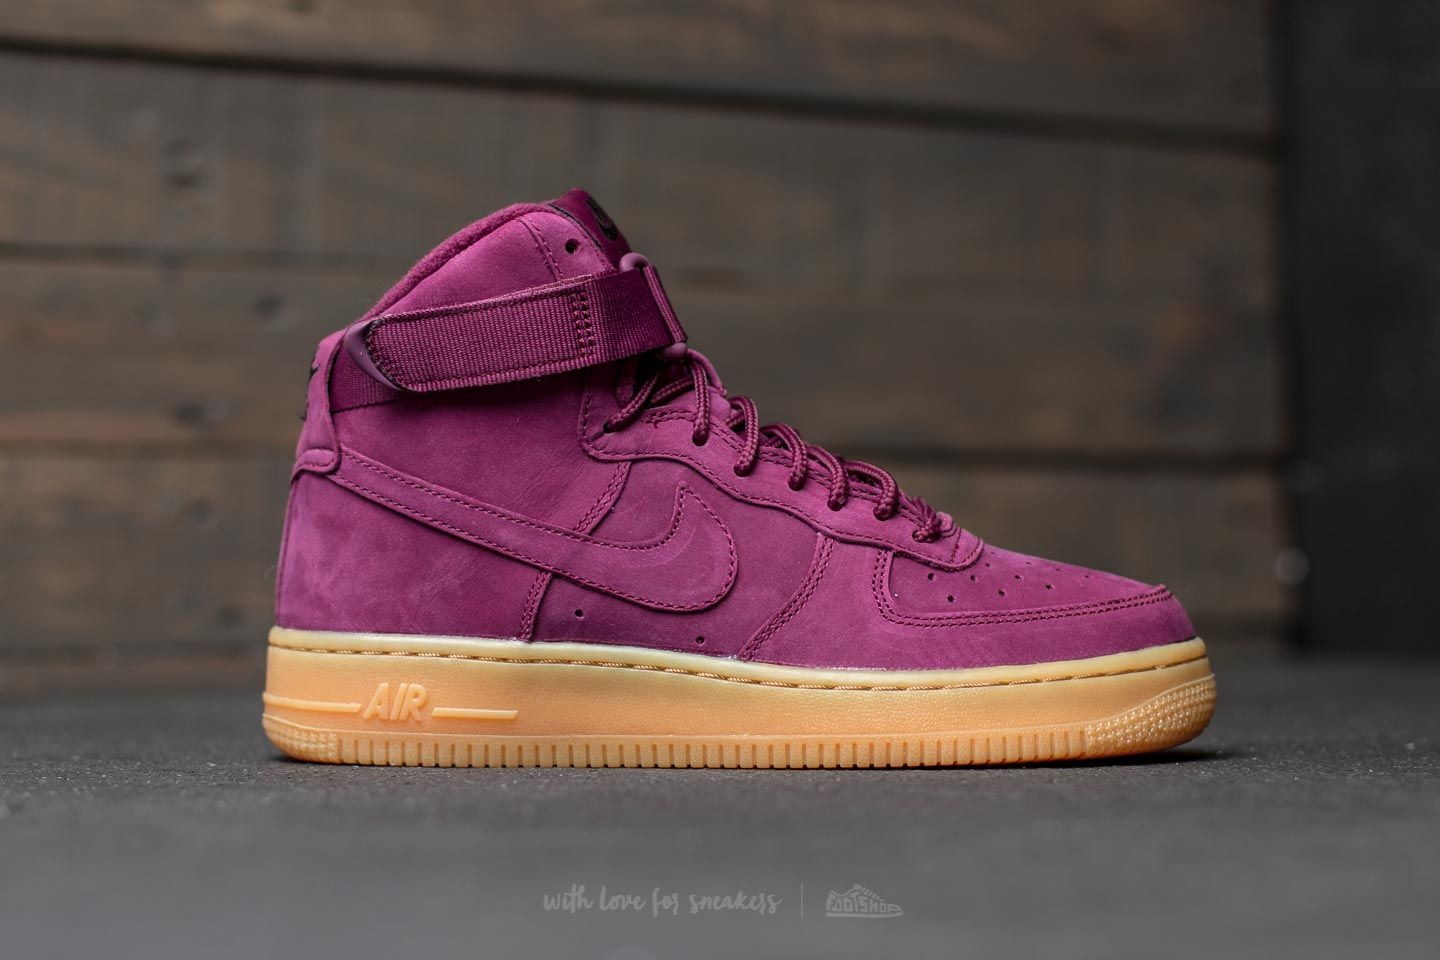 nike air force 1 high top pink